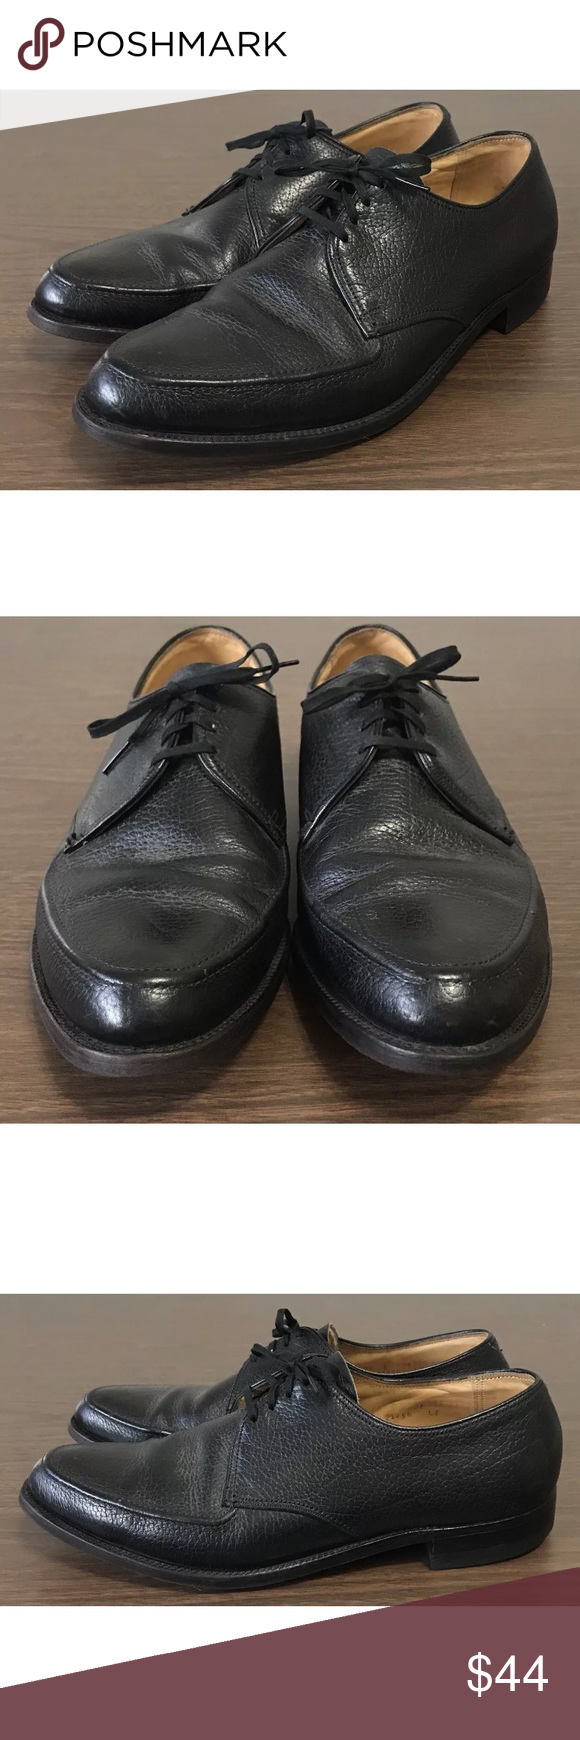 Pre-owned - Leather lace ups Florsheim